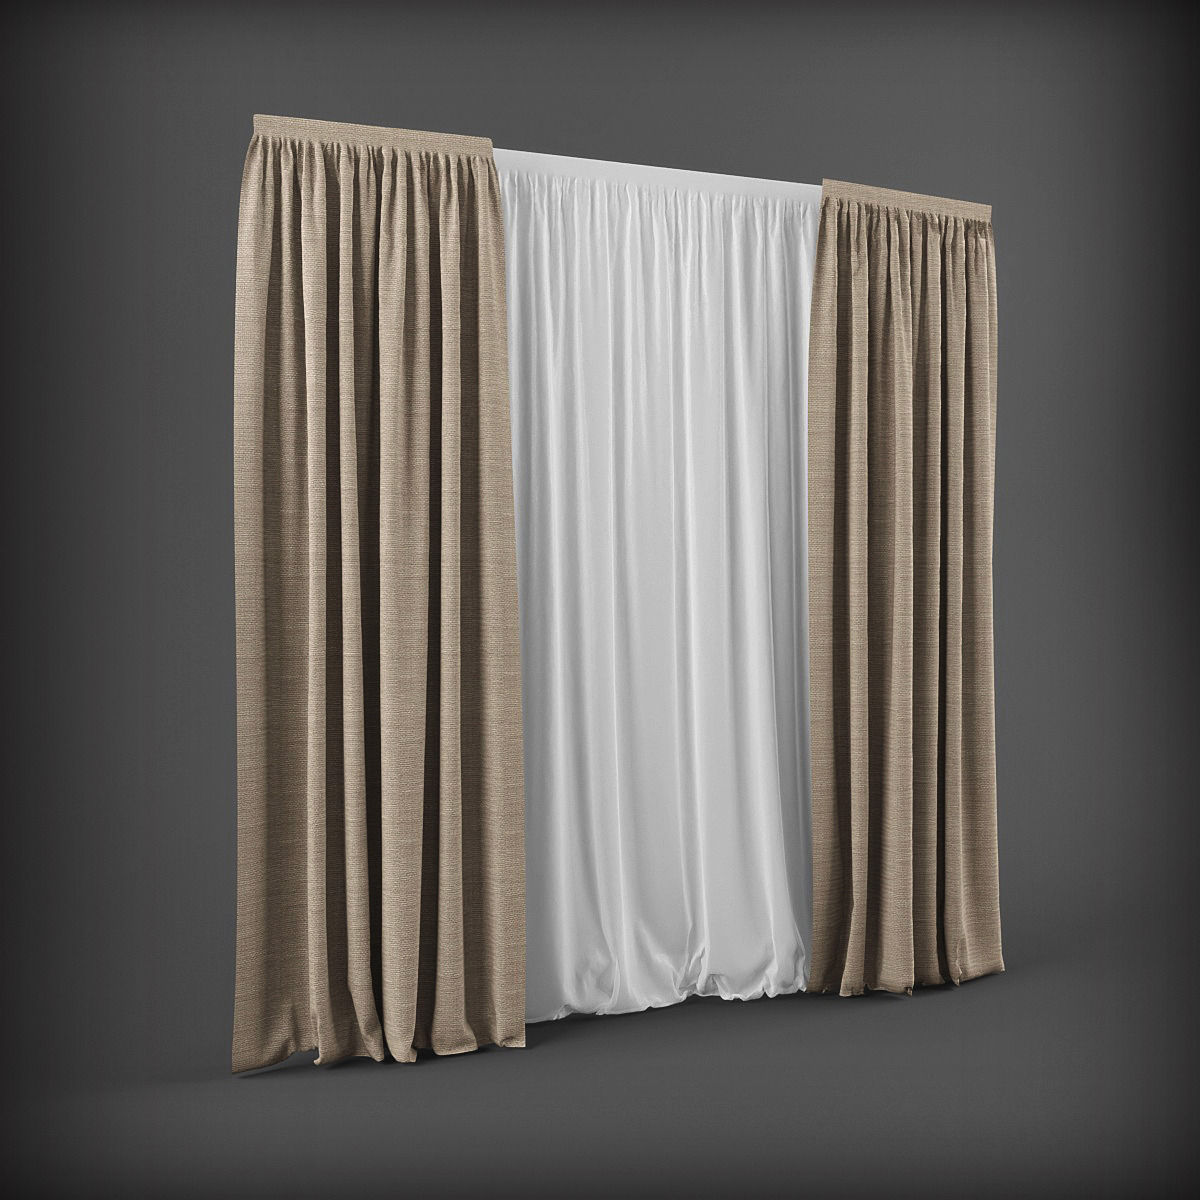 3d curtain model 9 free download | beautiful curtains, curtains.